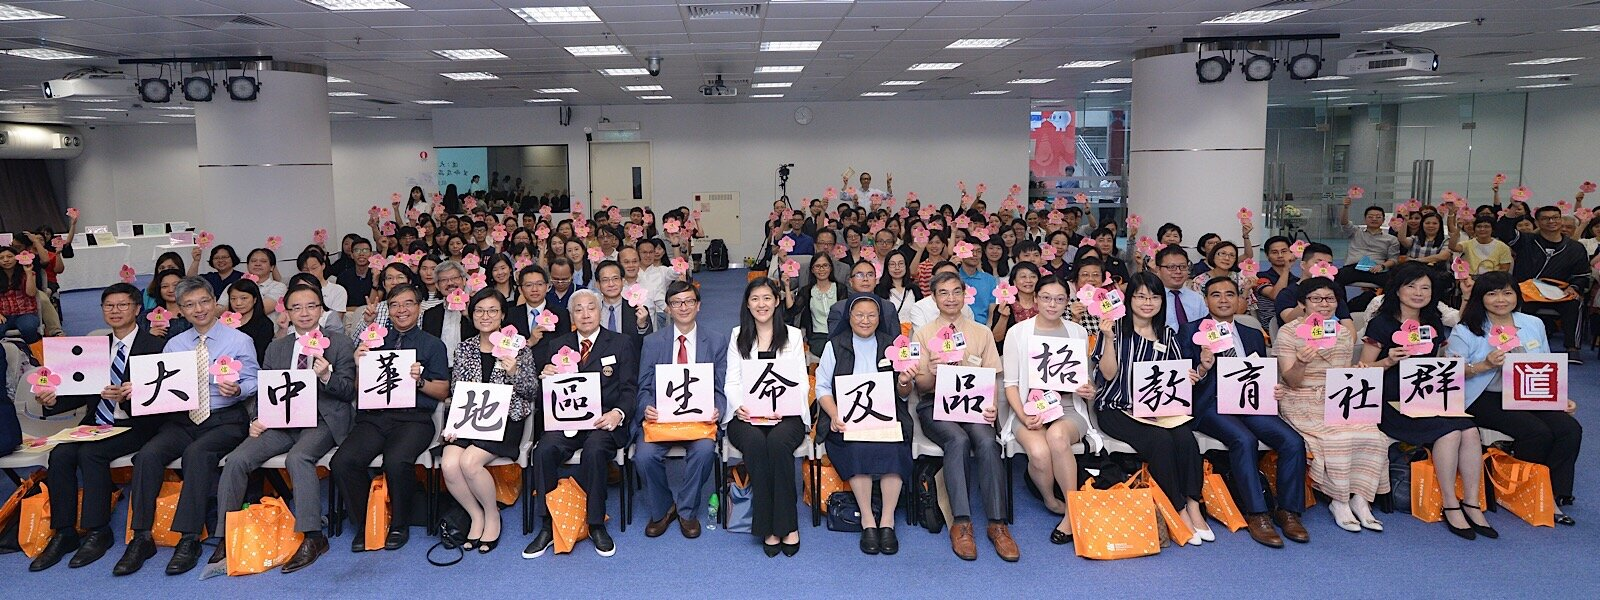 EdUHK Establishes Life Education Community for the Greater China Region to Foster Students' Personal Development